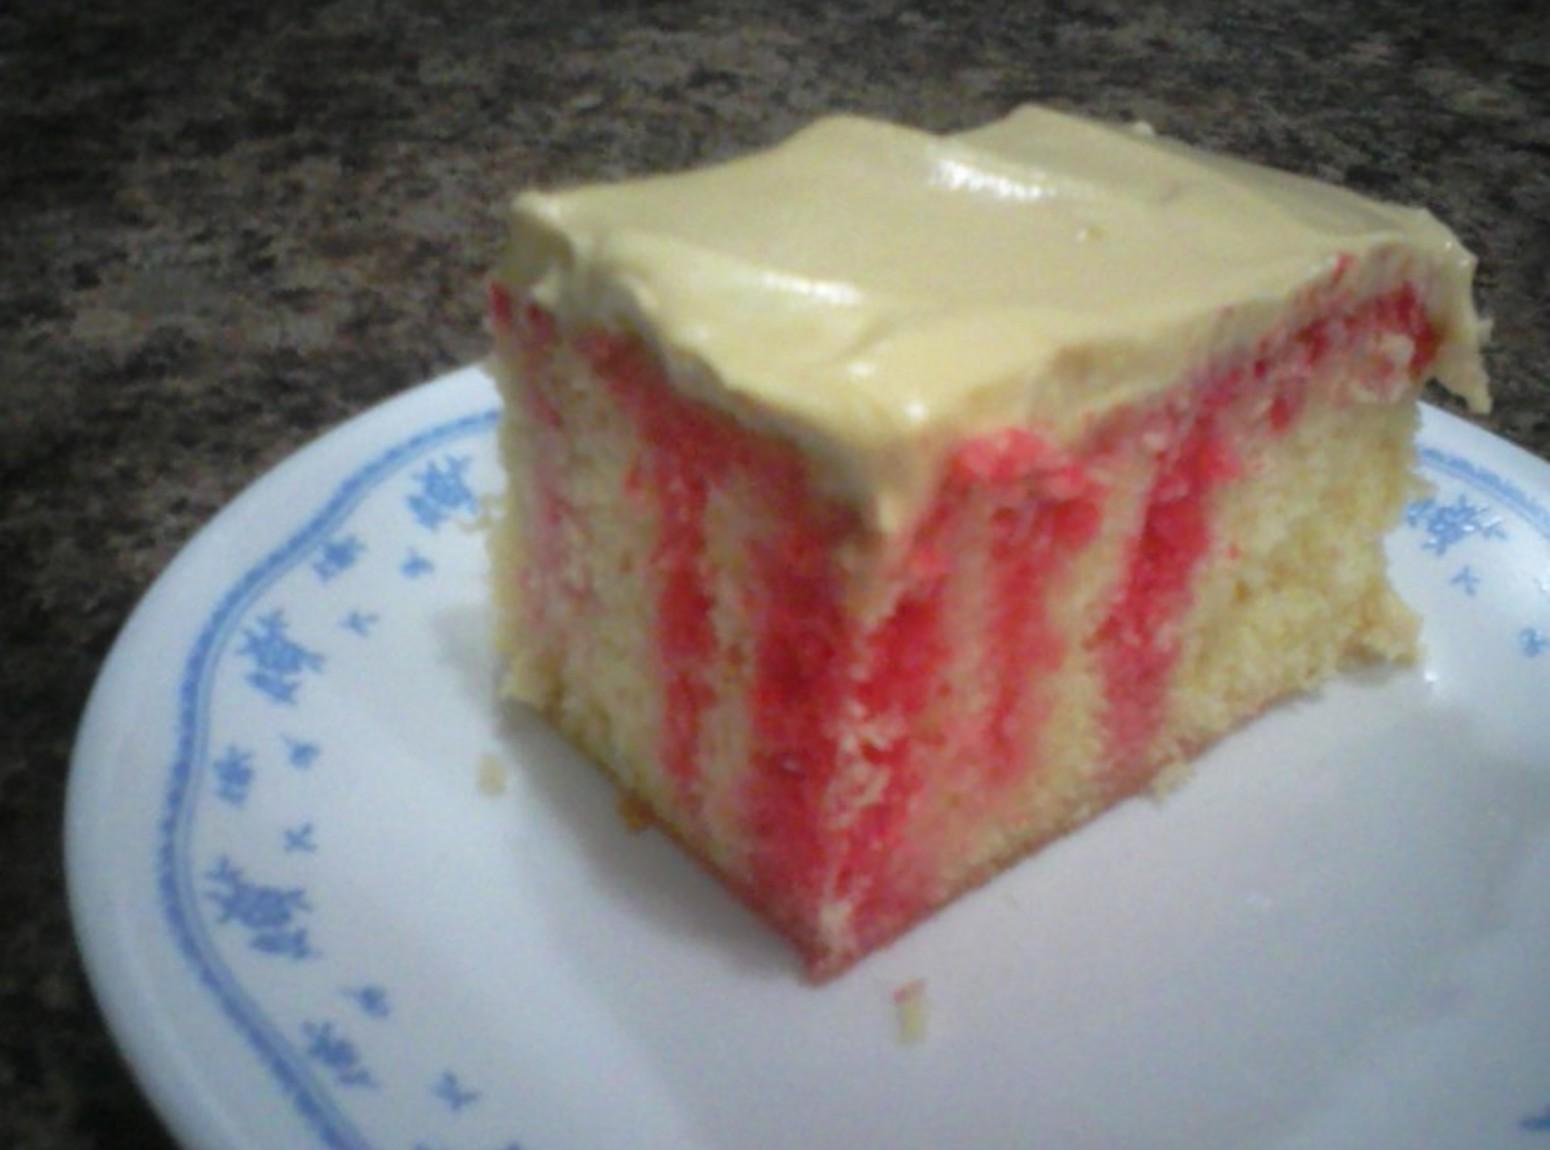 cool whip frosting recipe without pudding